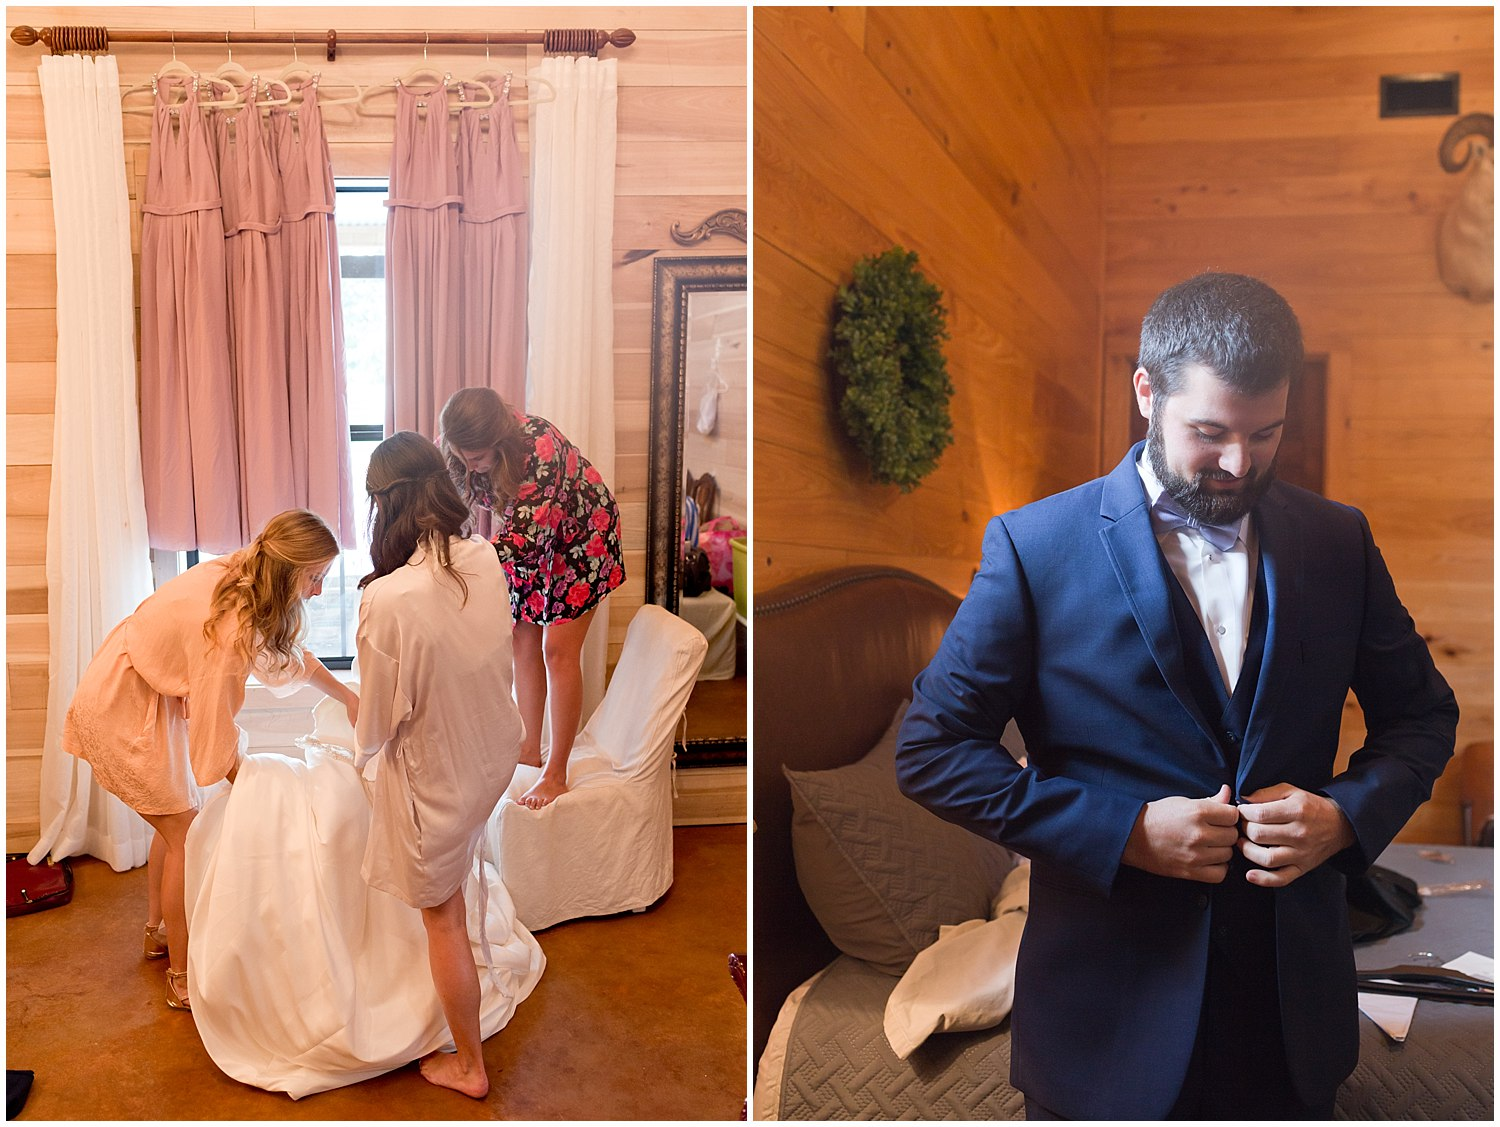 bride and groom getting ready at Southern Mississippi barn wedding venue